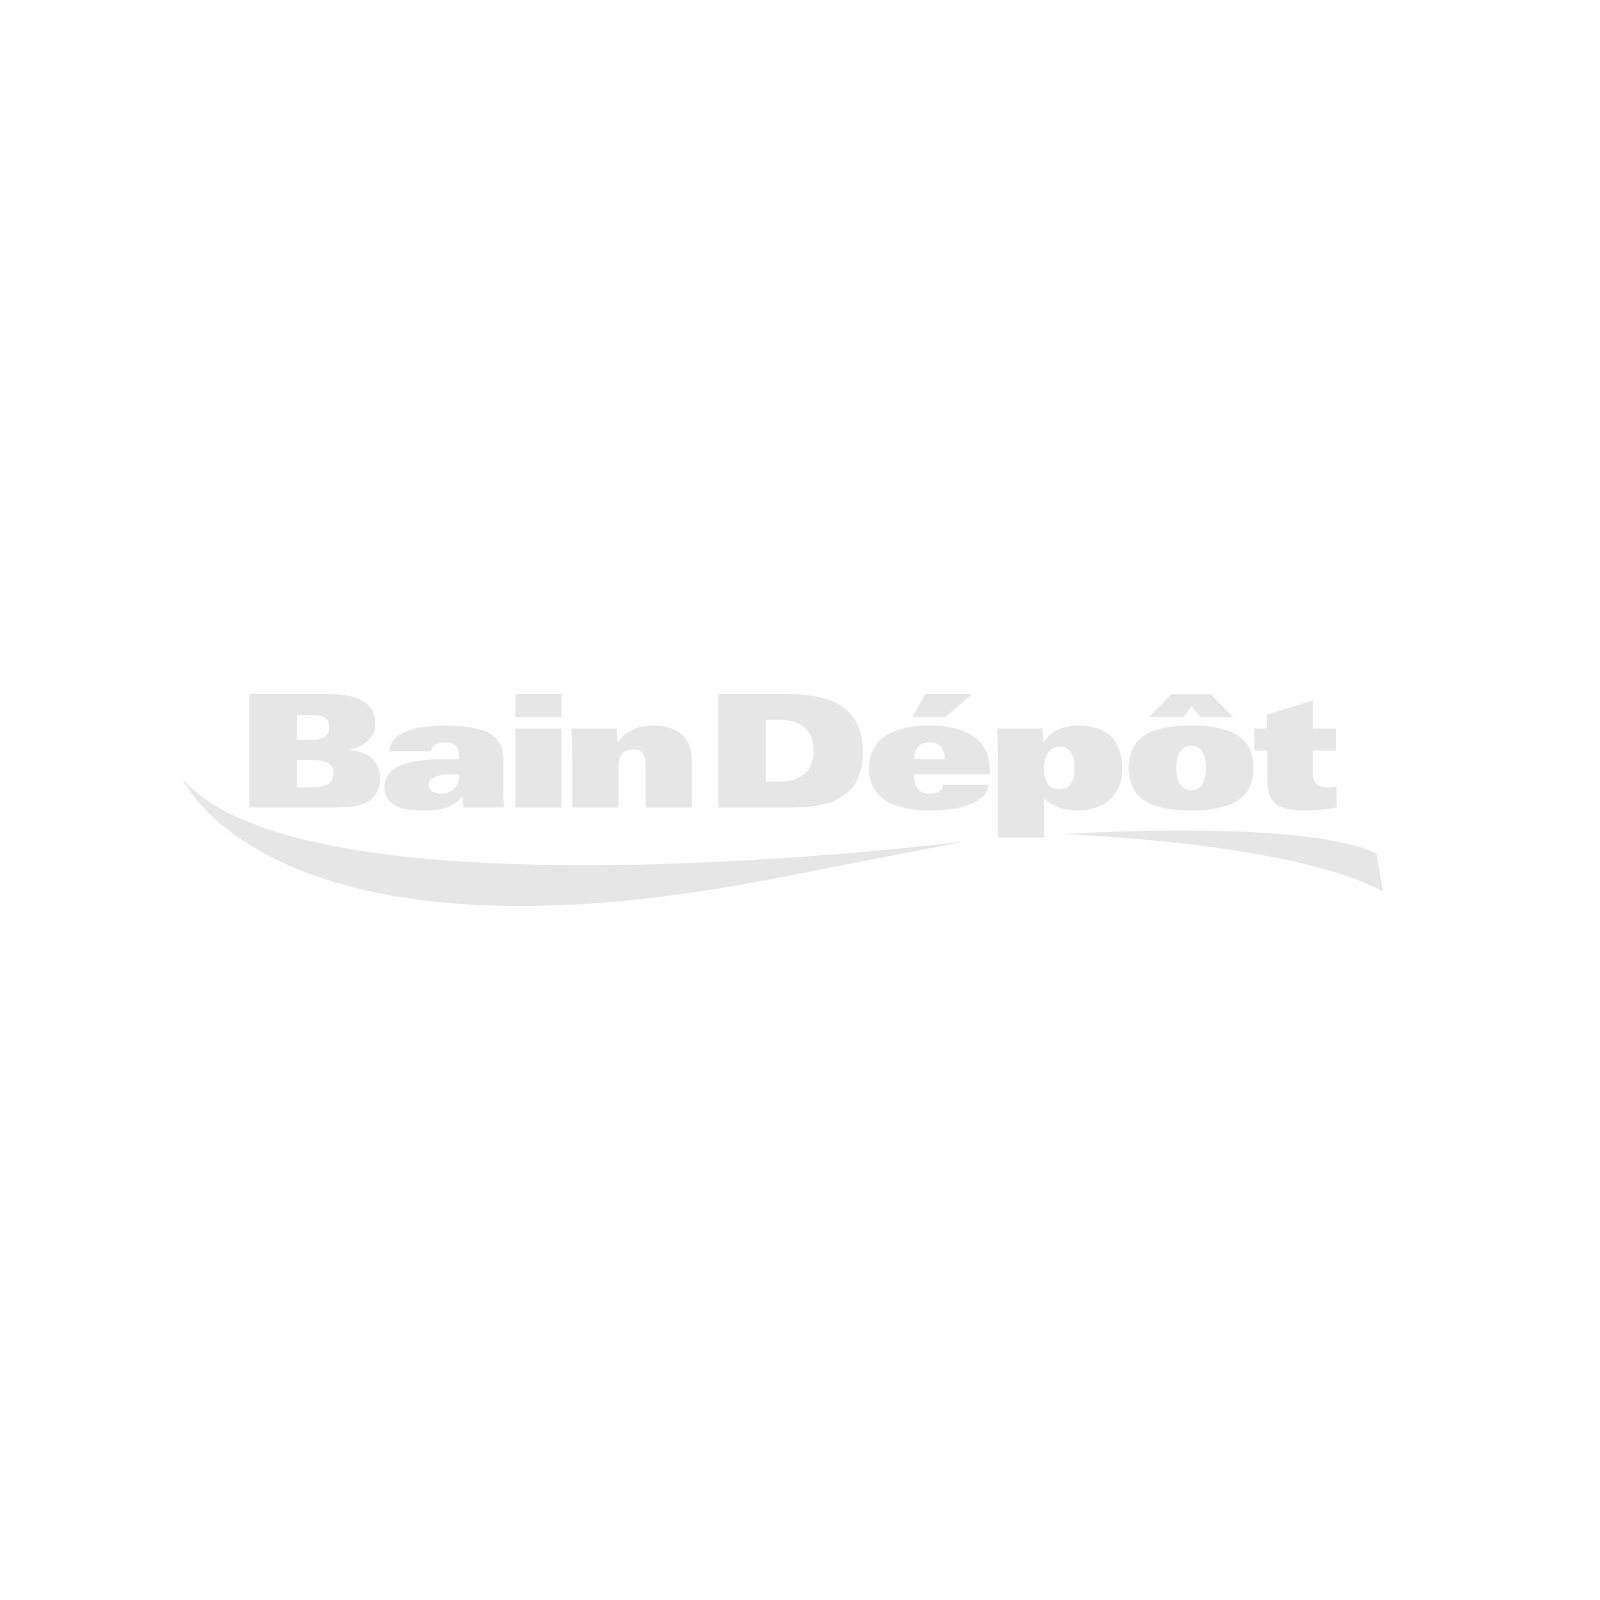 Perfum bottle-pattern 14-piece accessory set with bath mat, shower curtain and hooks